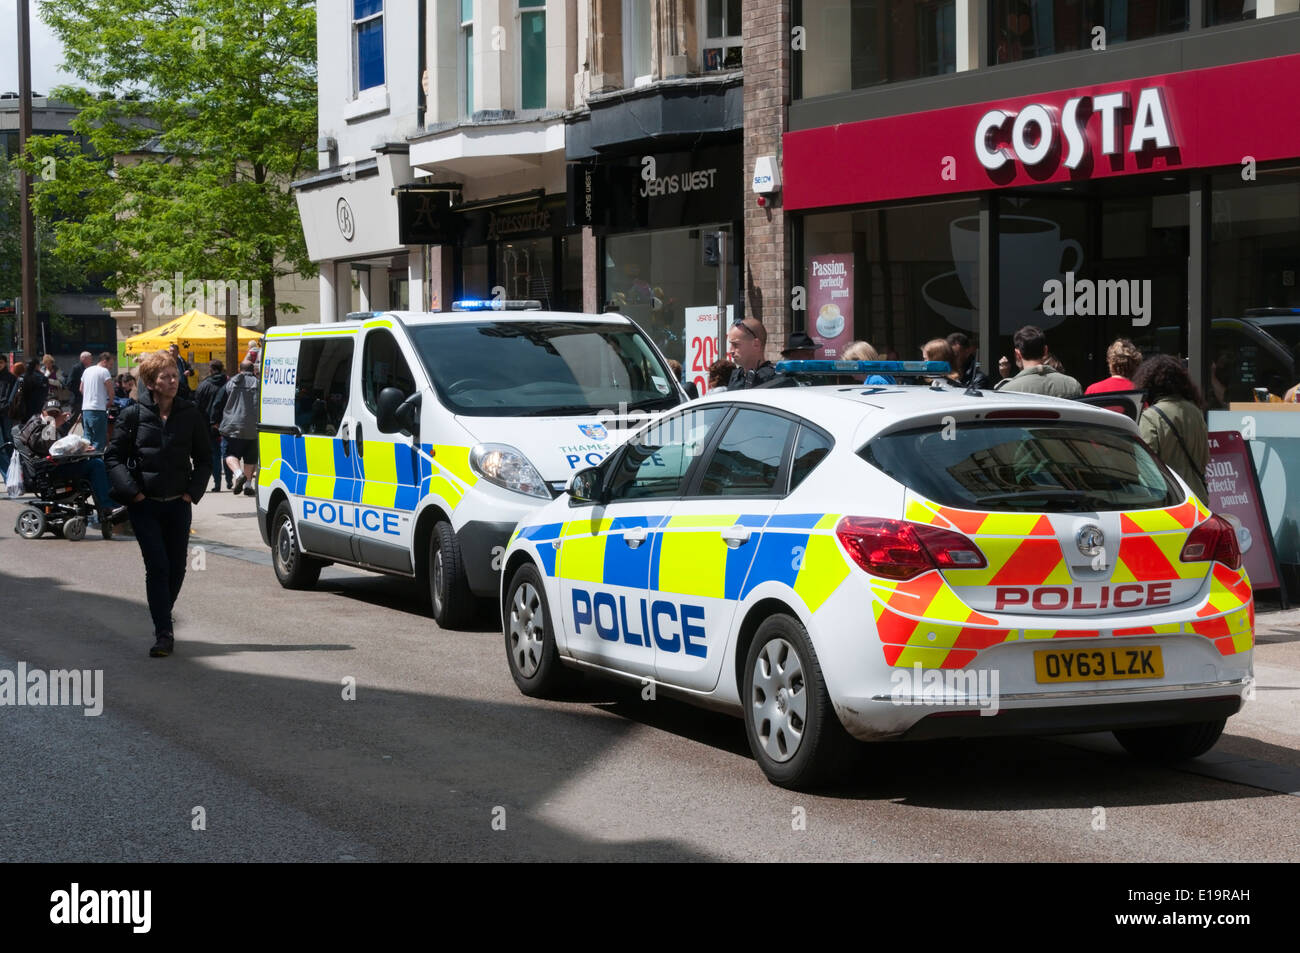 Thames Valley Police attending an incident in Queen Street, Oxford. - Stock Image